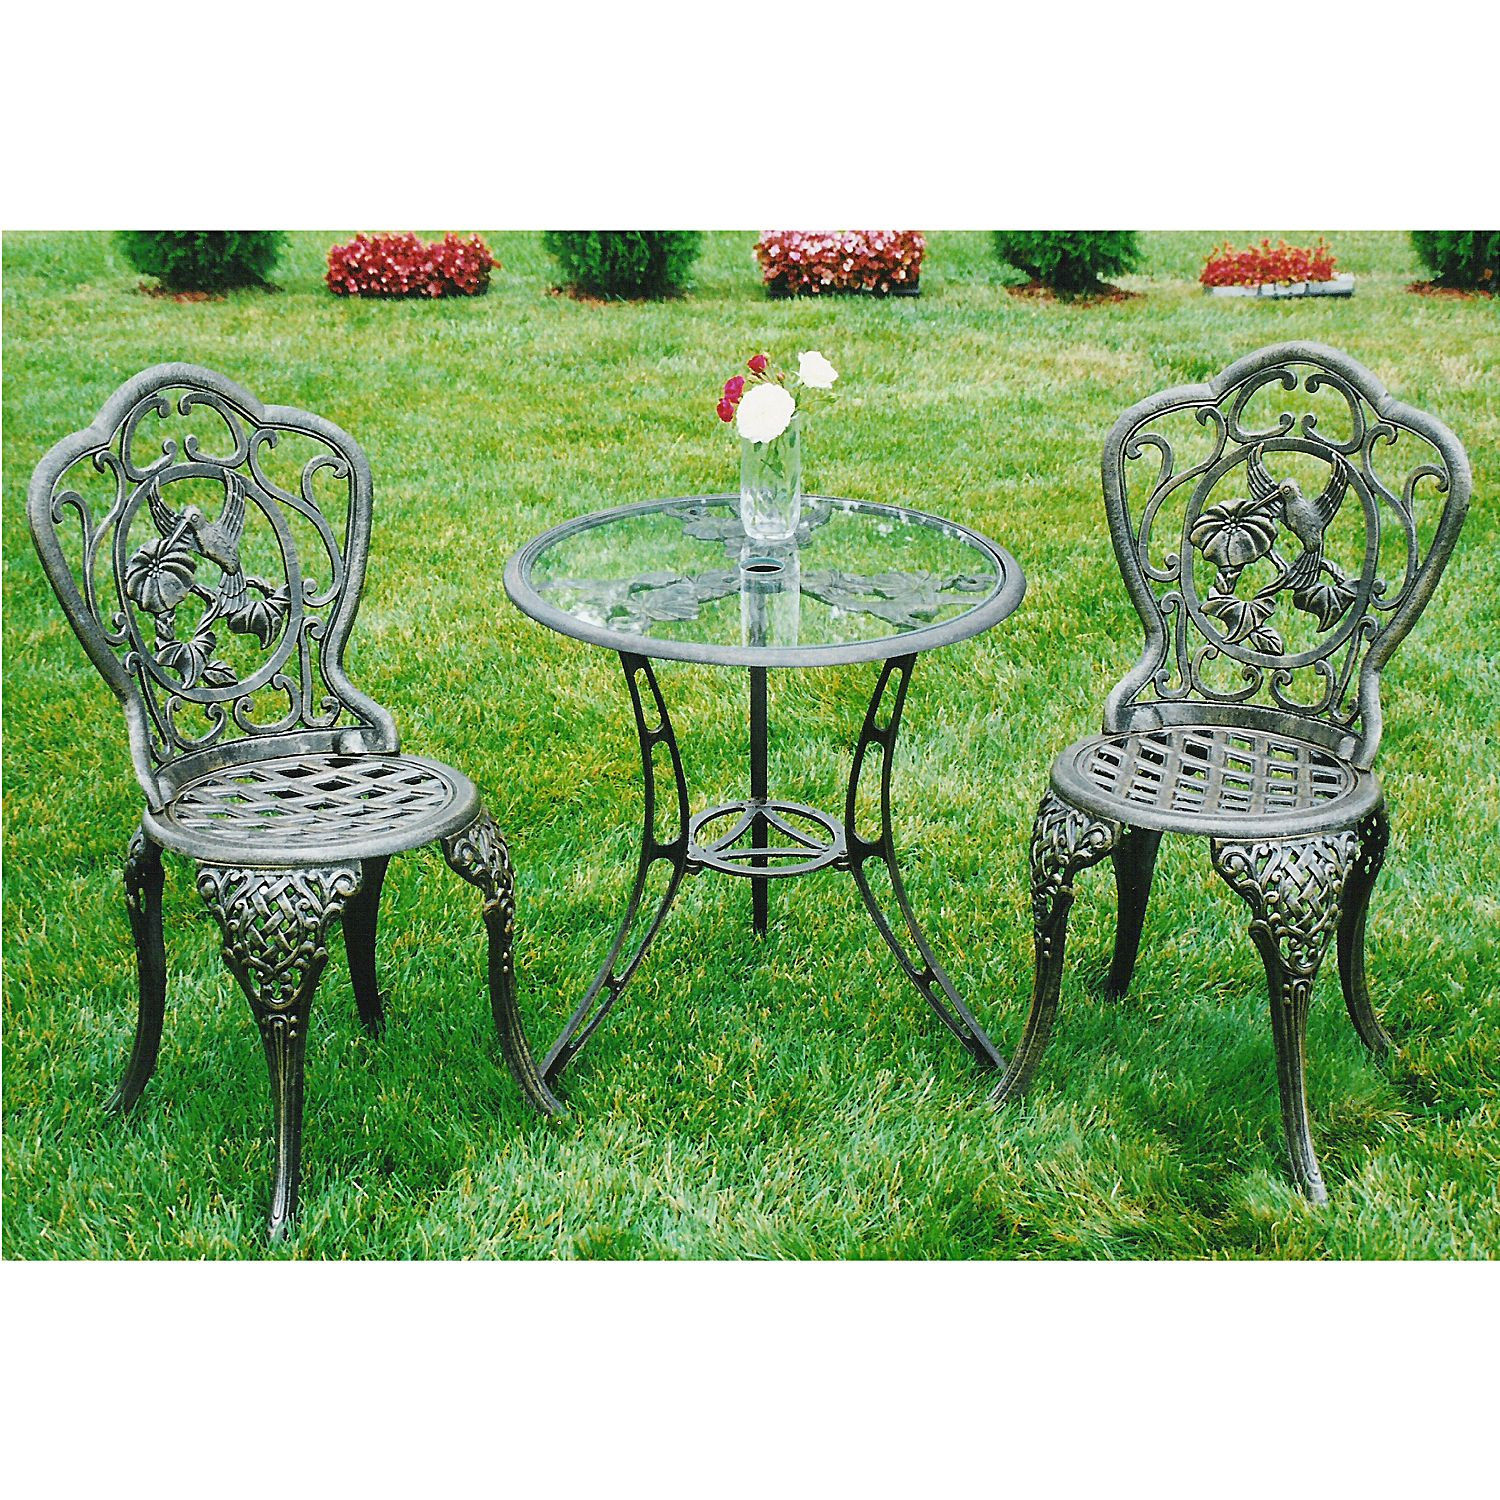 Hummingbird Bistro Patio Set   Outdoor